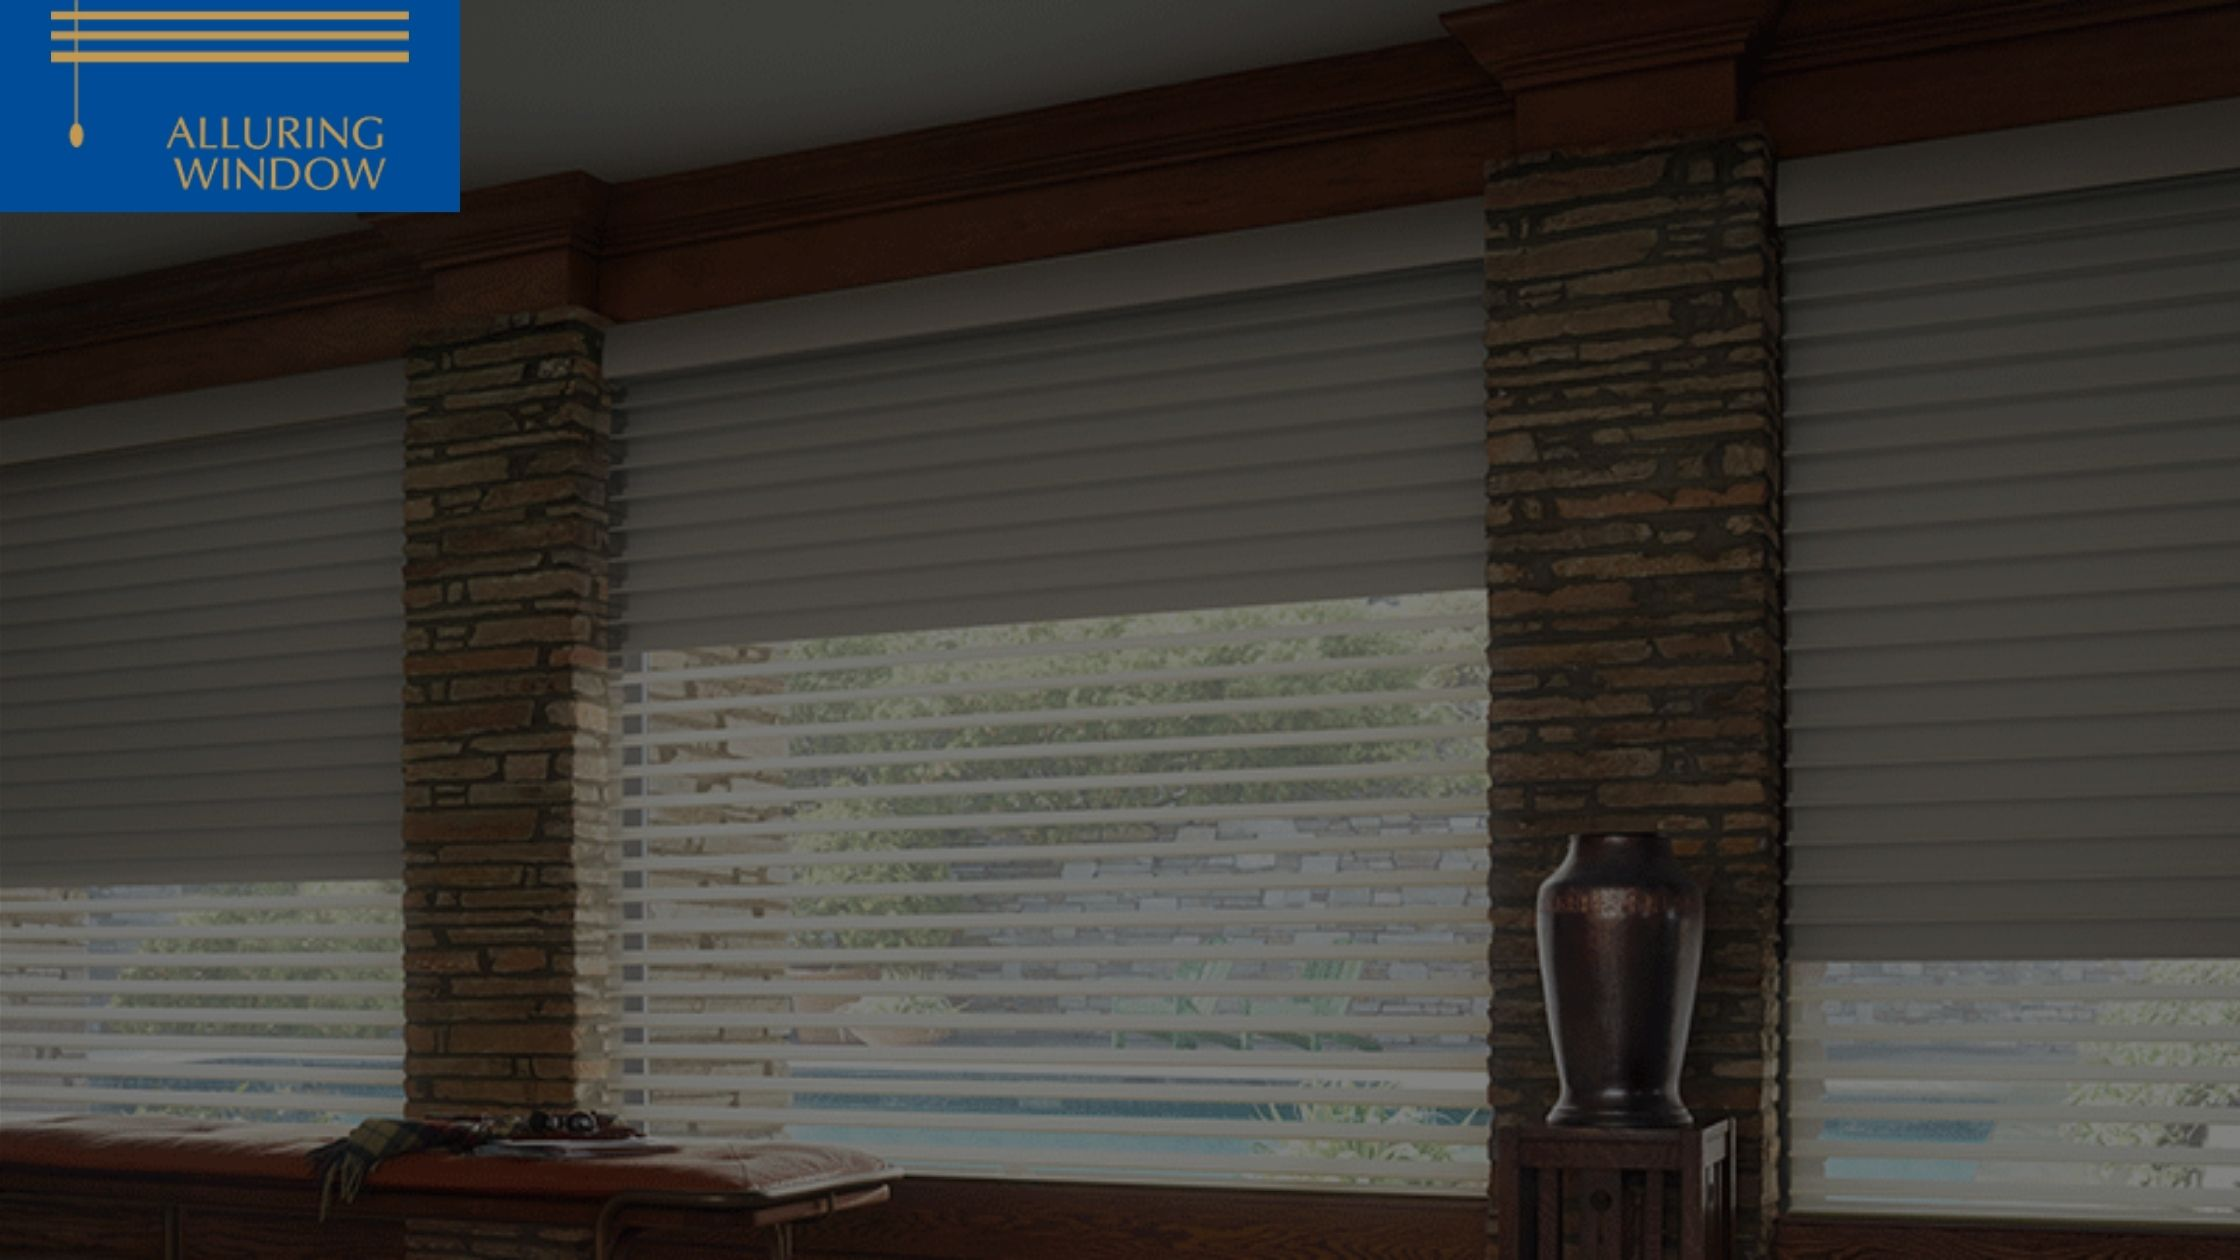 How to Stop Light Coming in Through Your Blinds?